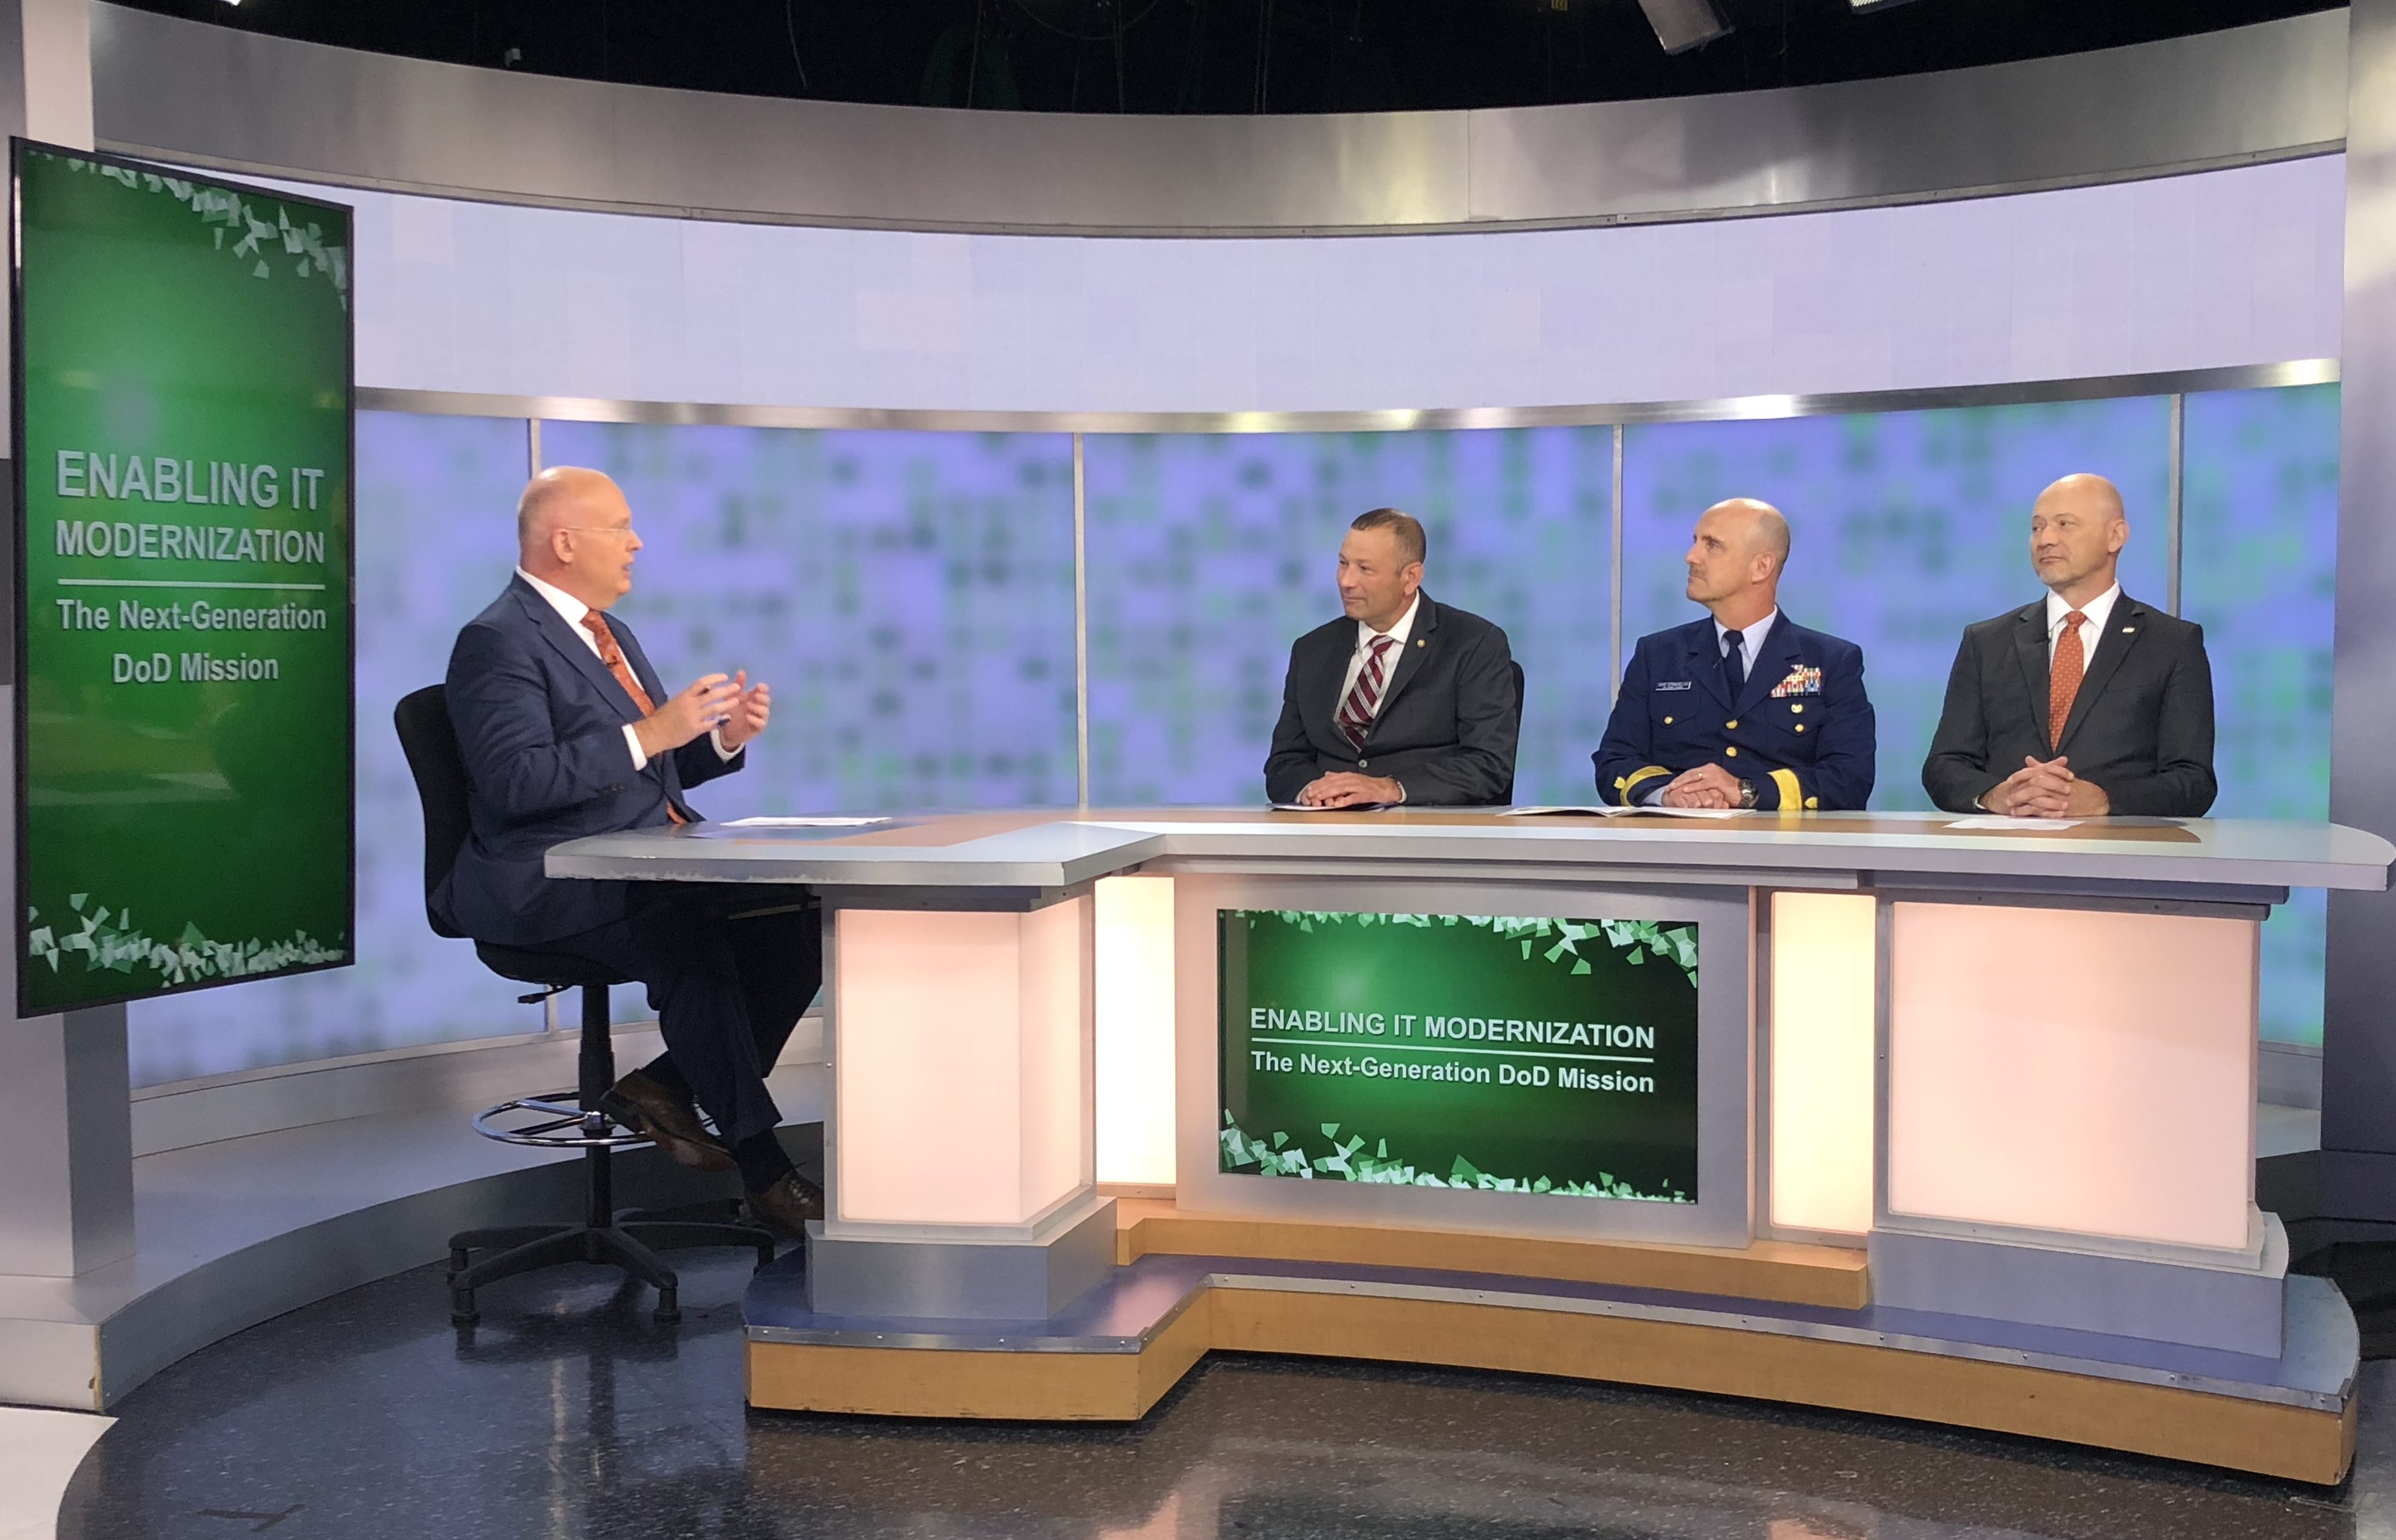 Enabling IT Modernization – The Next-Generation DoD Mission